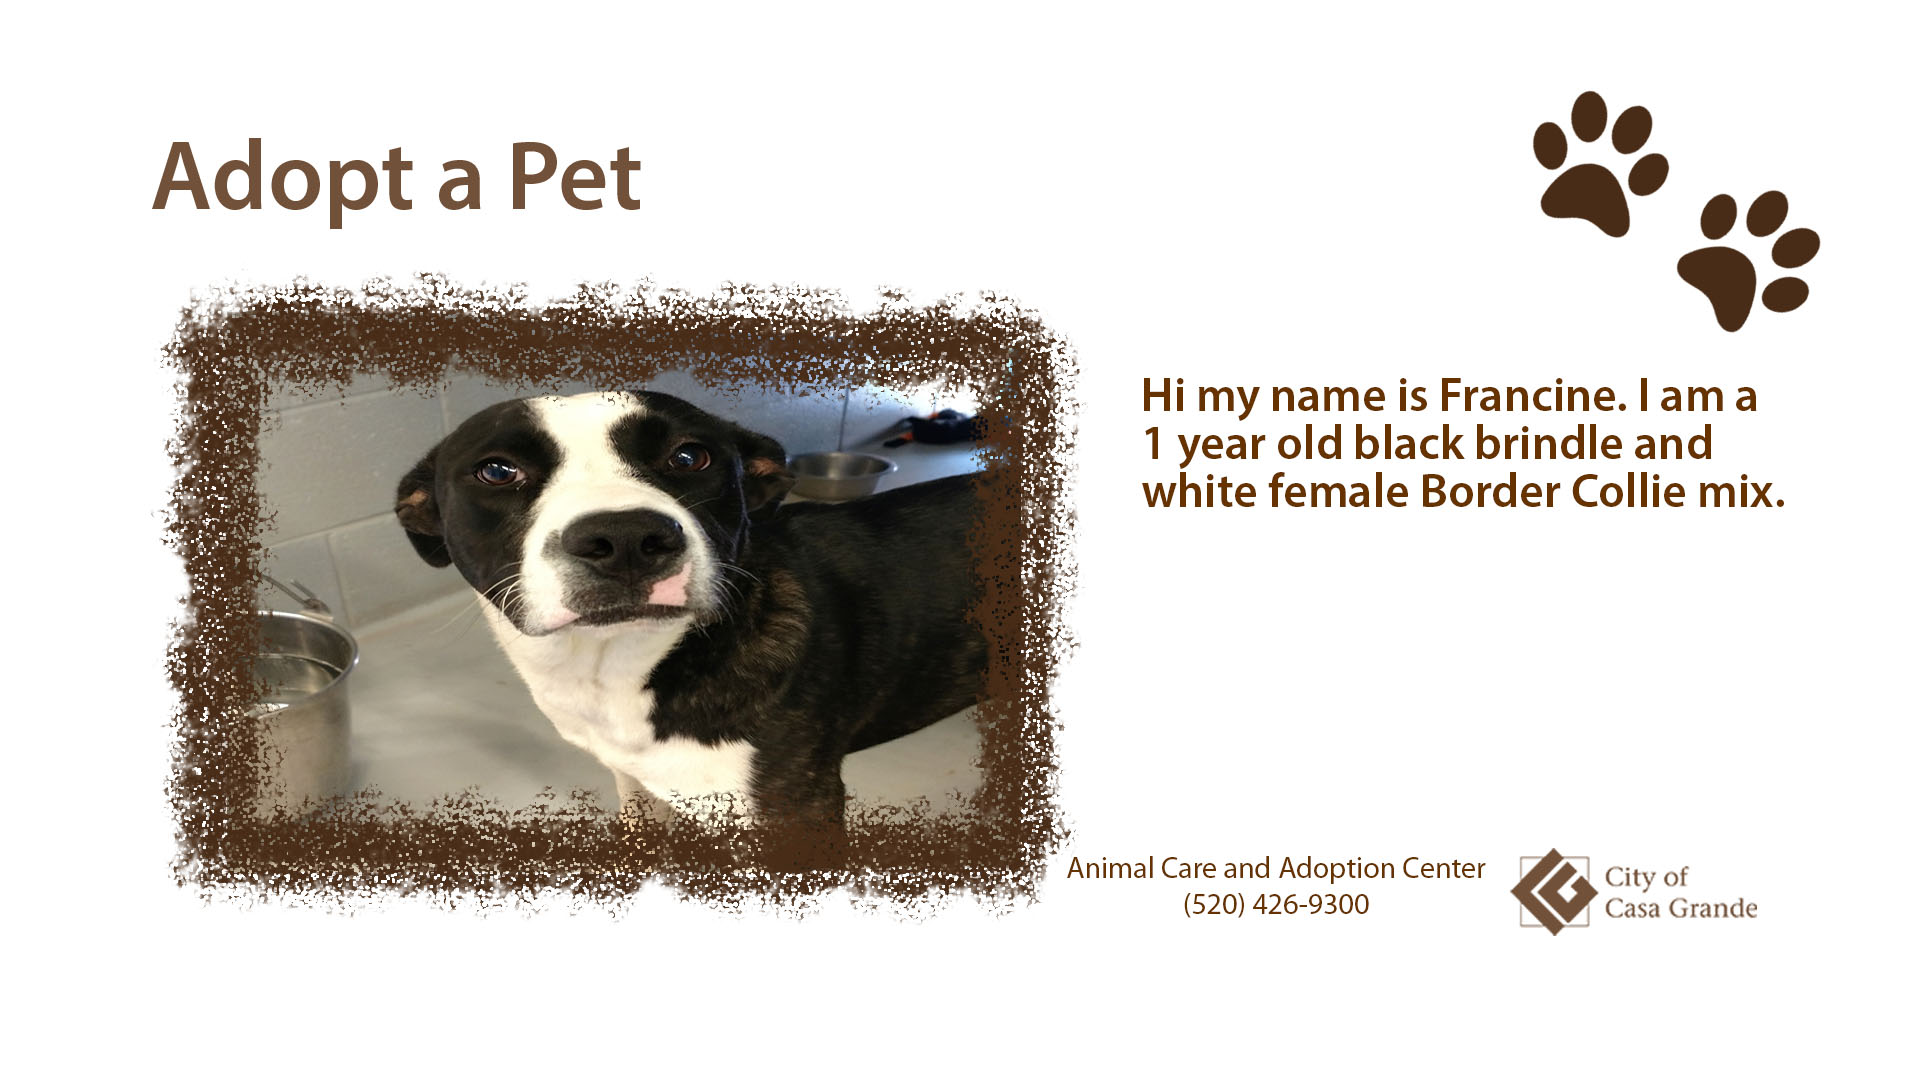 One year old black brindle and white female Border Collie mix dog named Francine